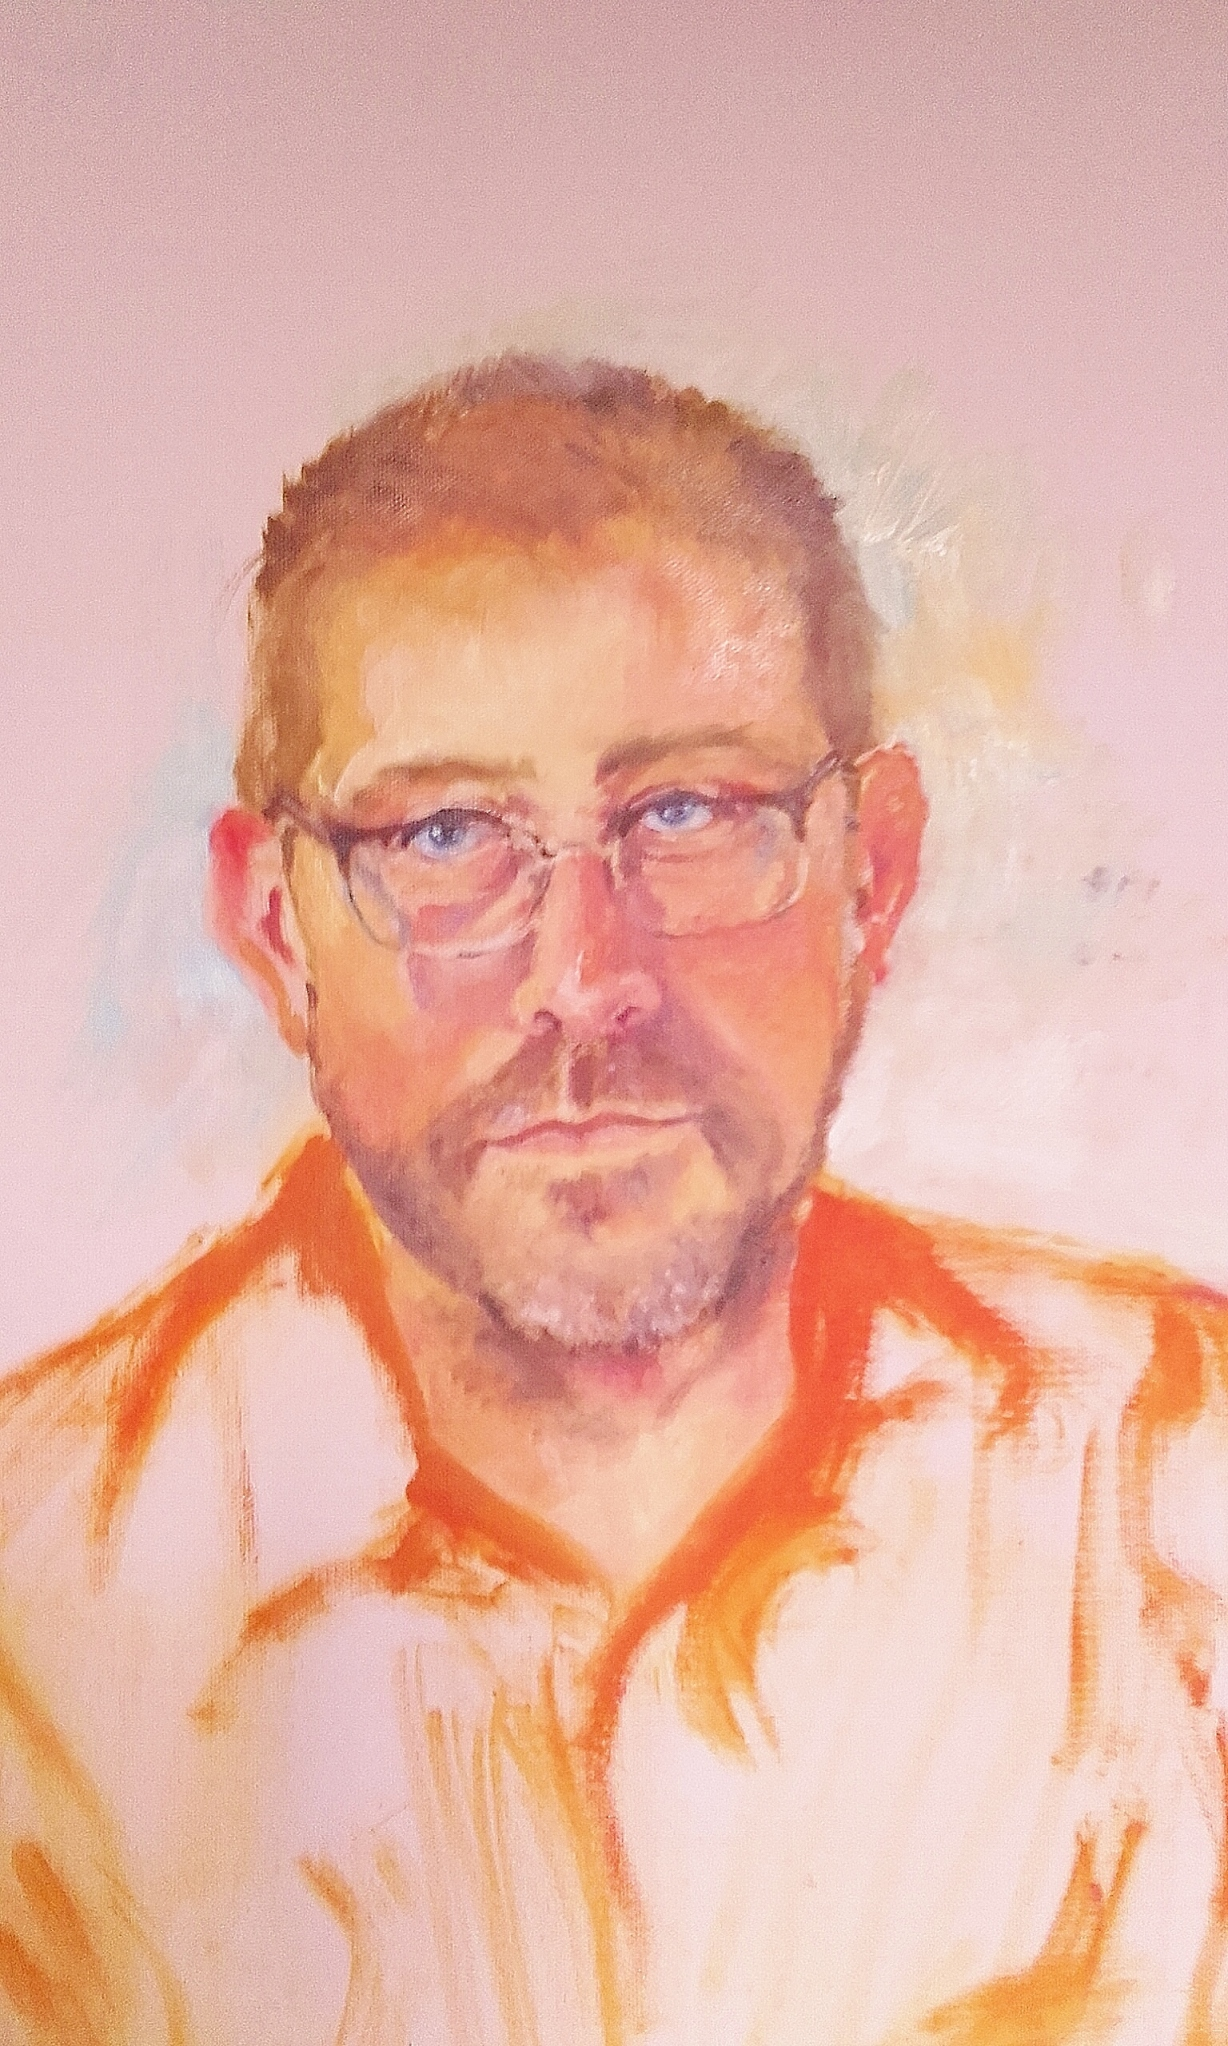 demo-portrait-of-dave-14-9-16-cropped